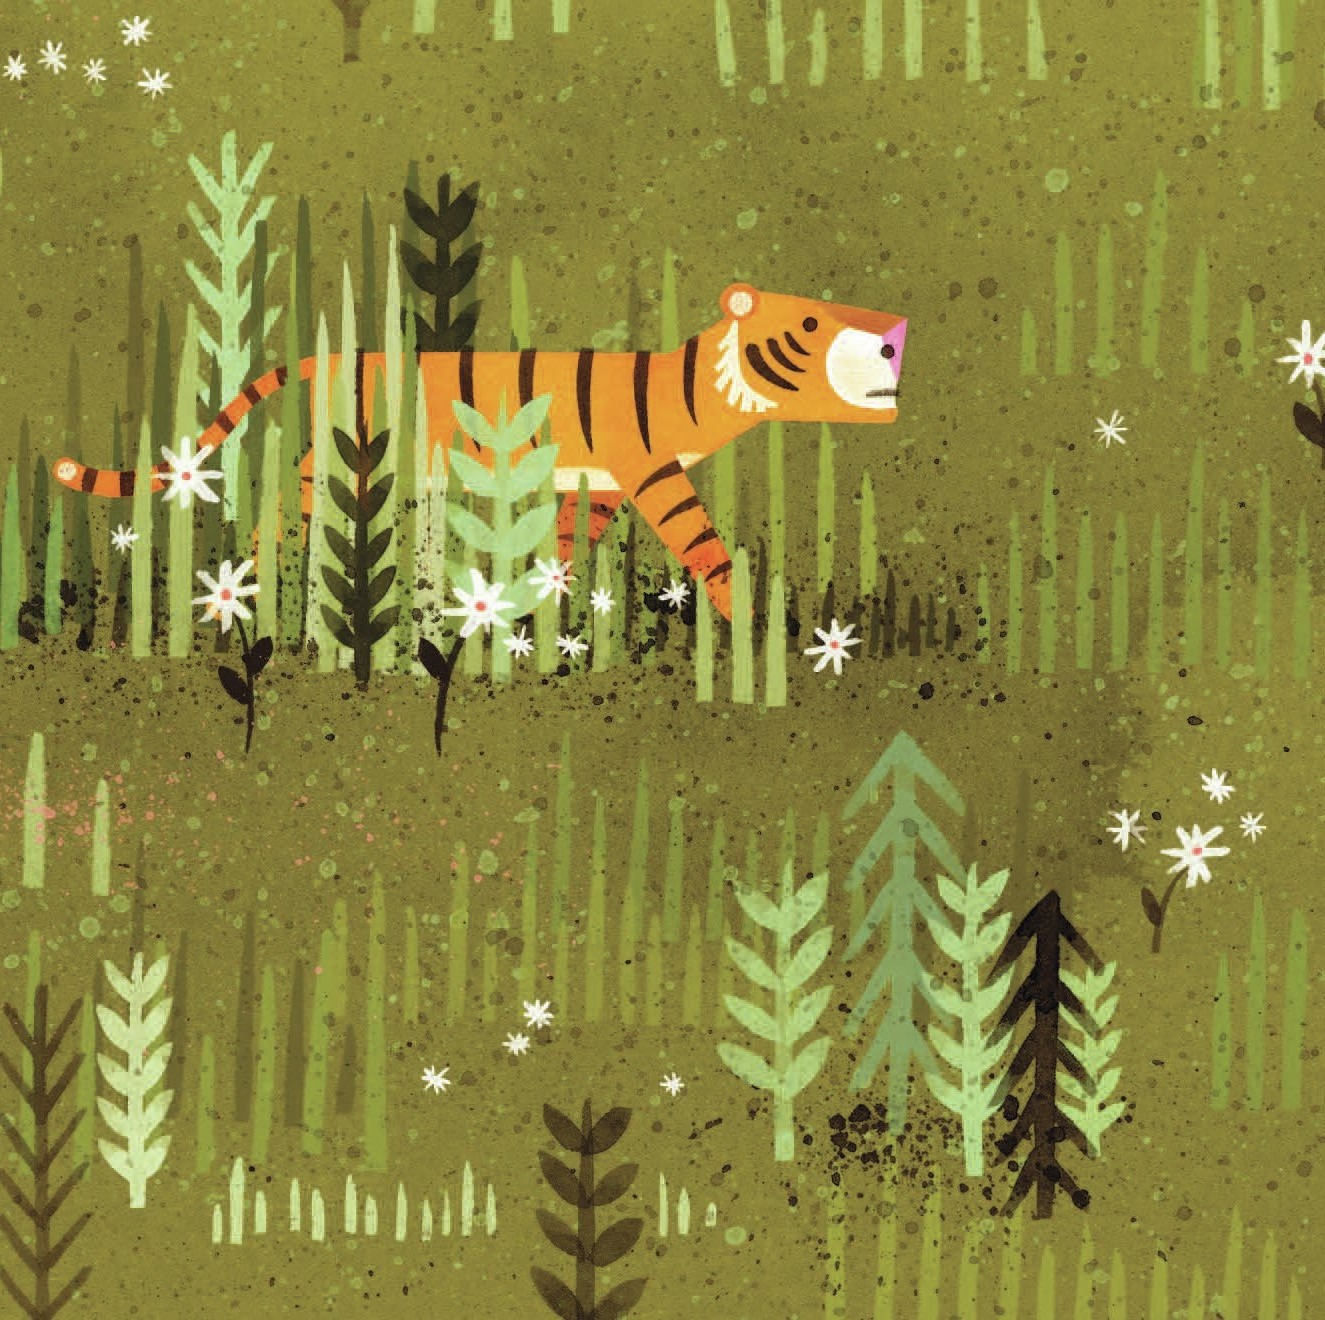 A spread from Peter Brown's Mr. Tiger Goes Wild.